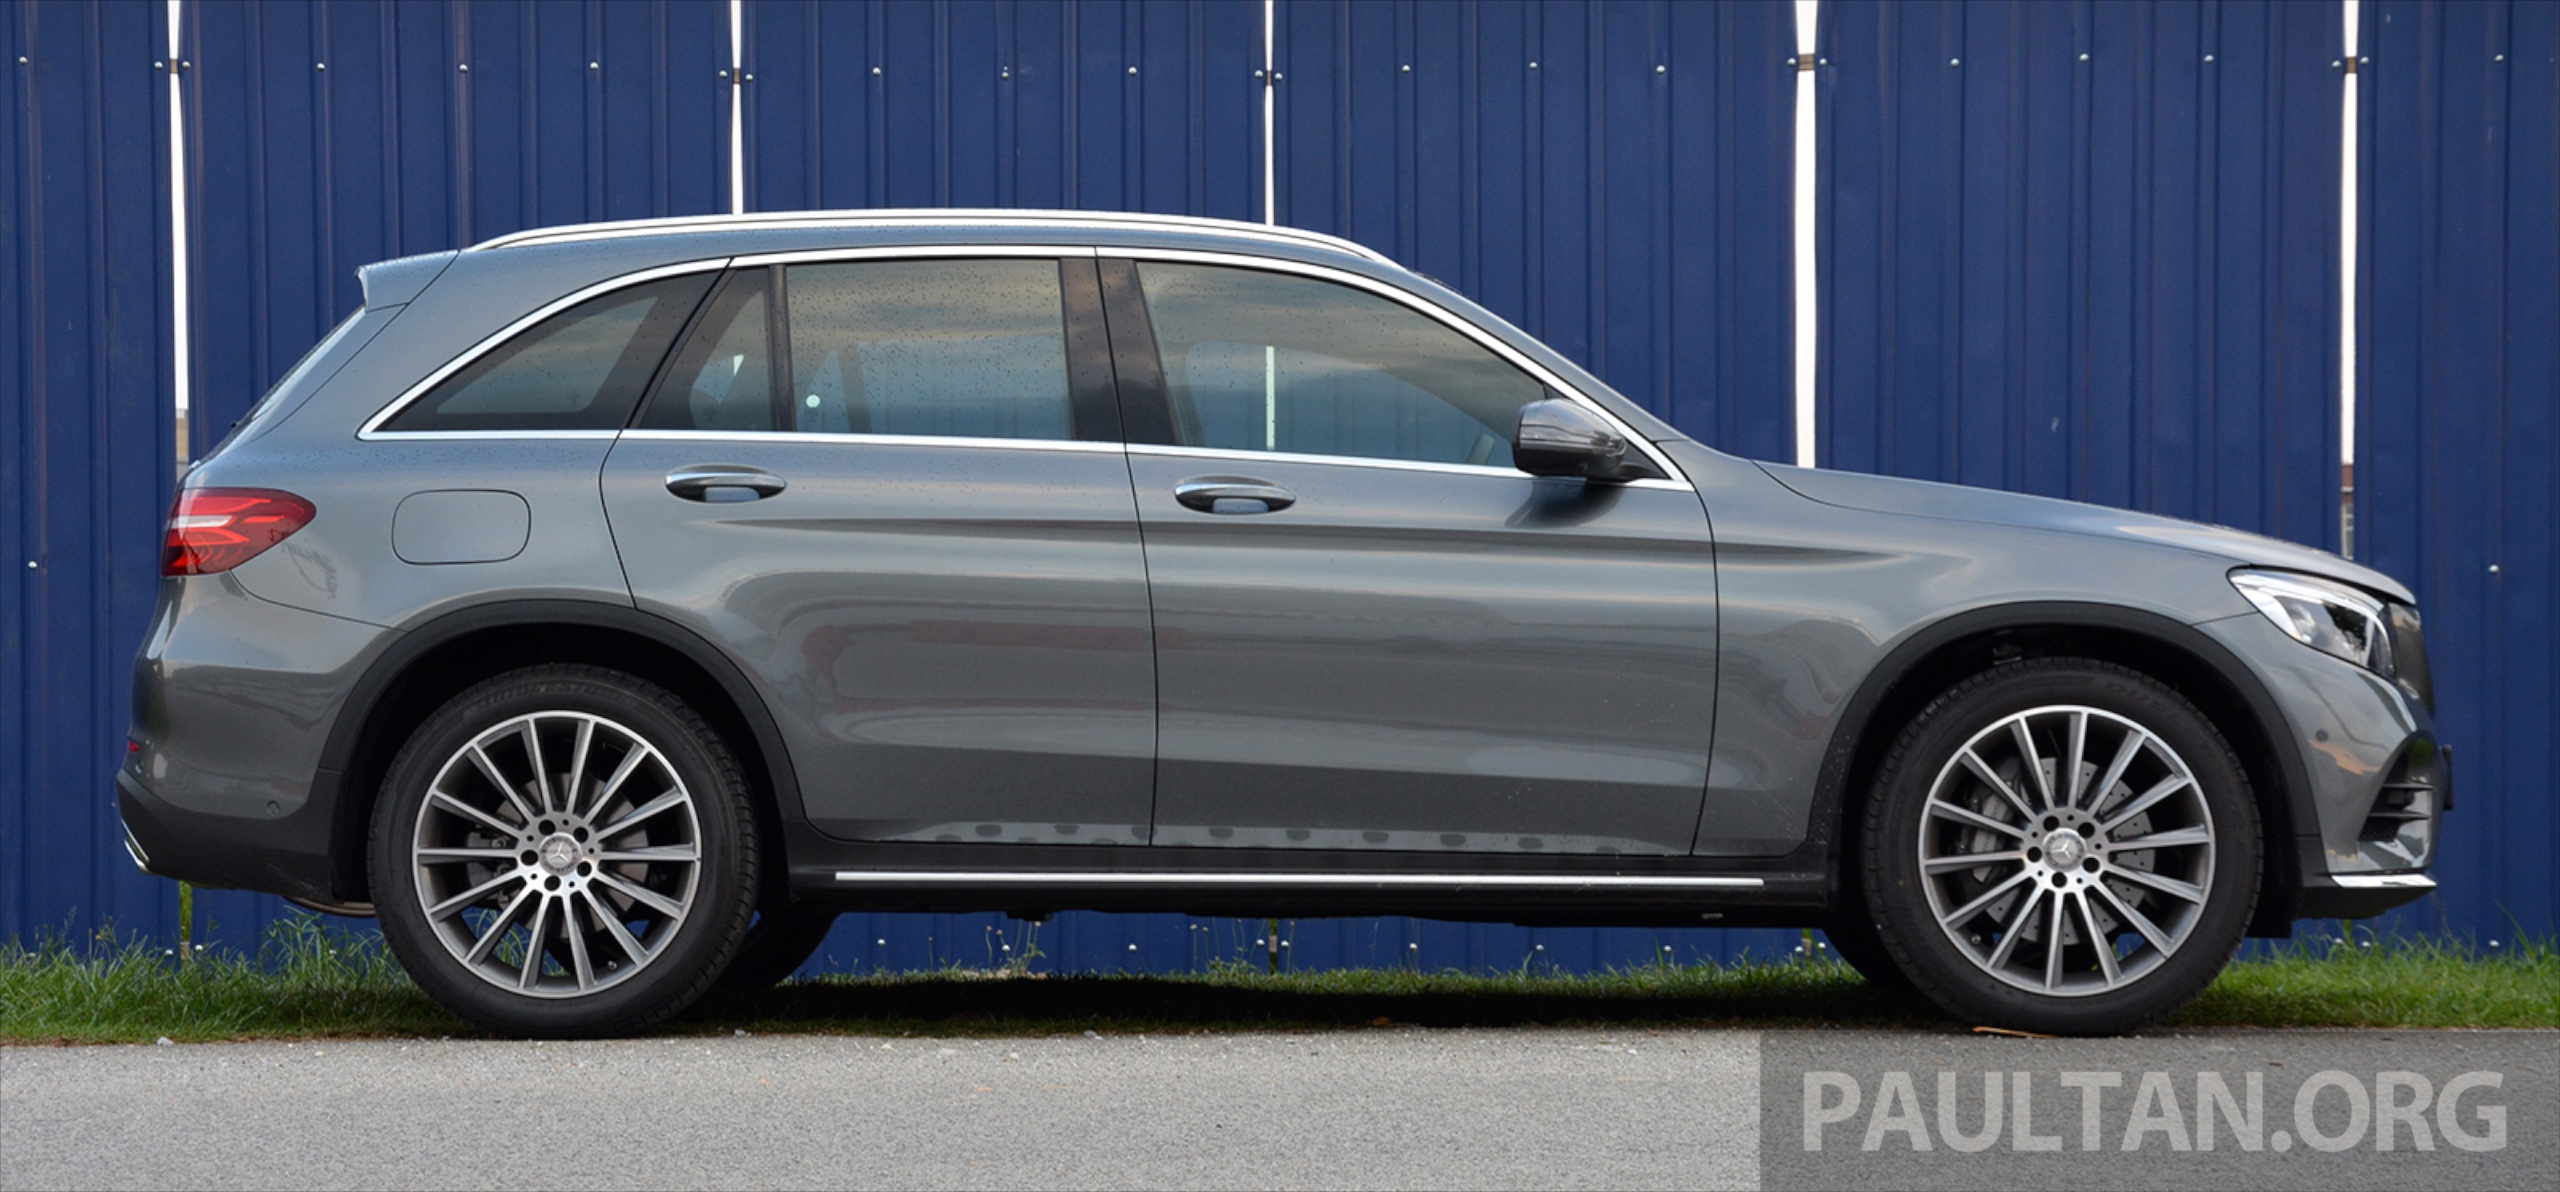 Mercedes Benz Glc 250 Debuts In Malaysia Rm329k Image 428632